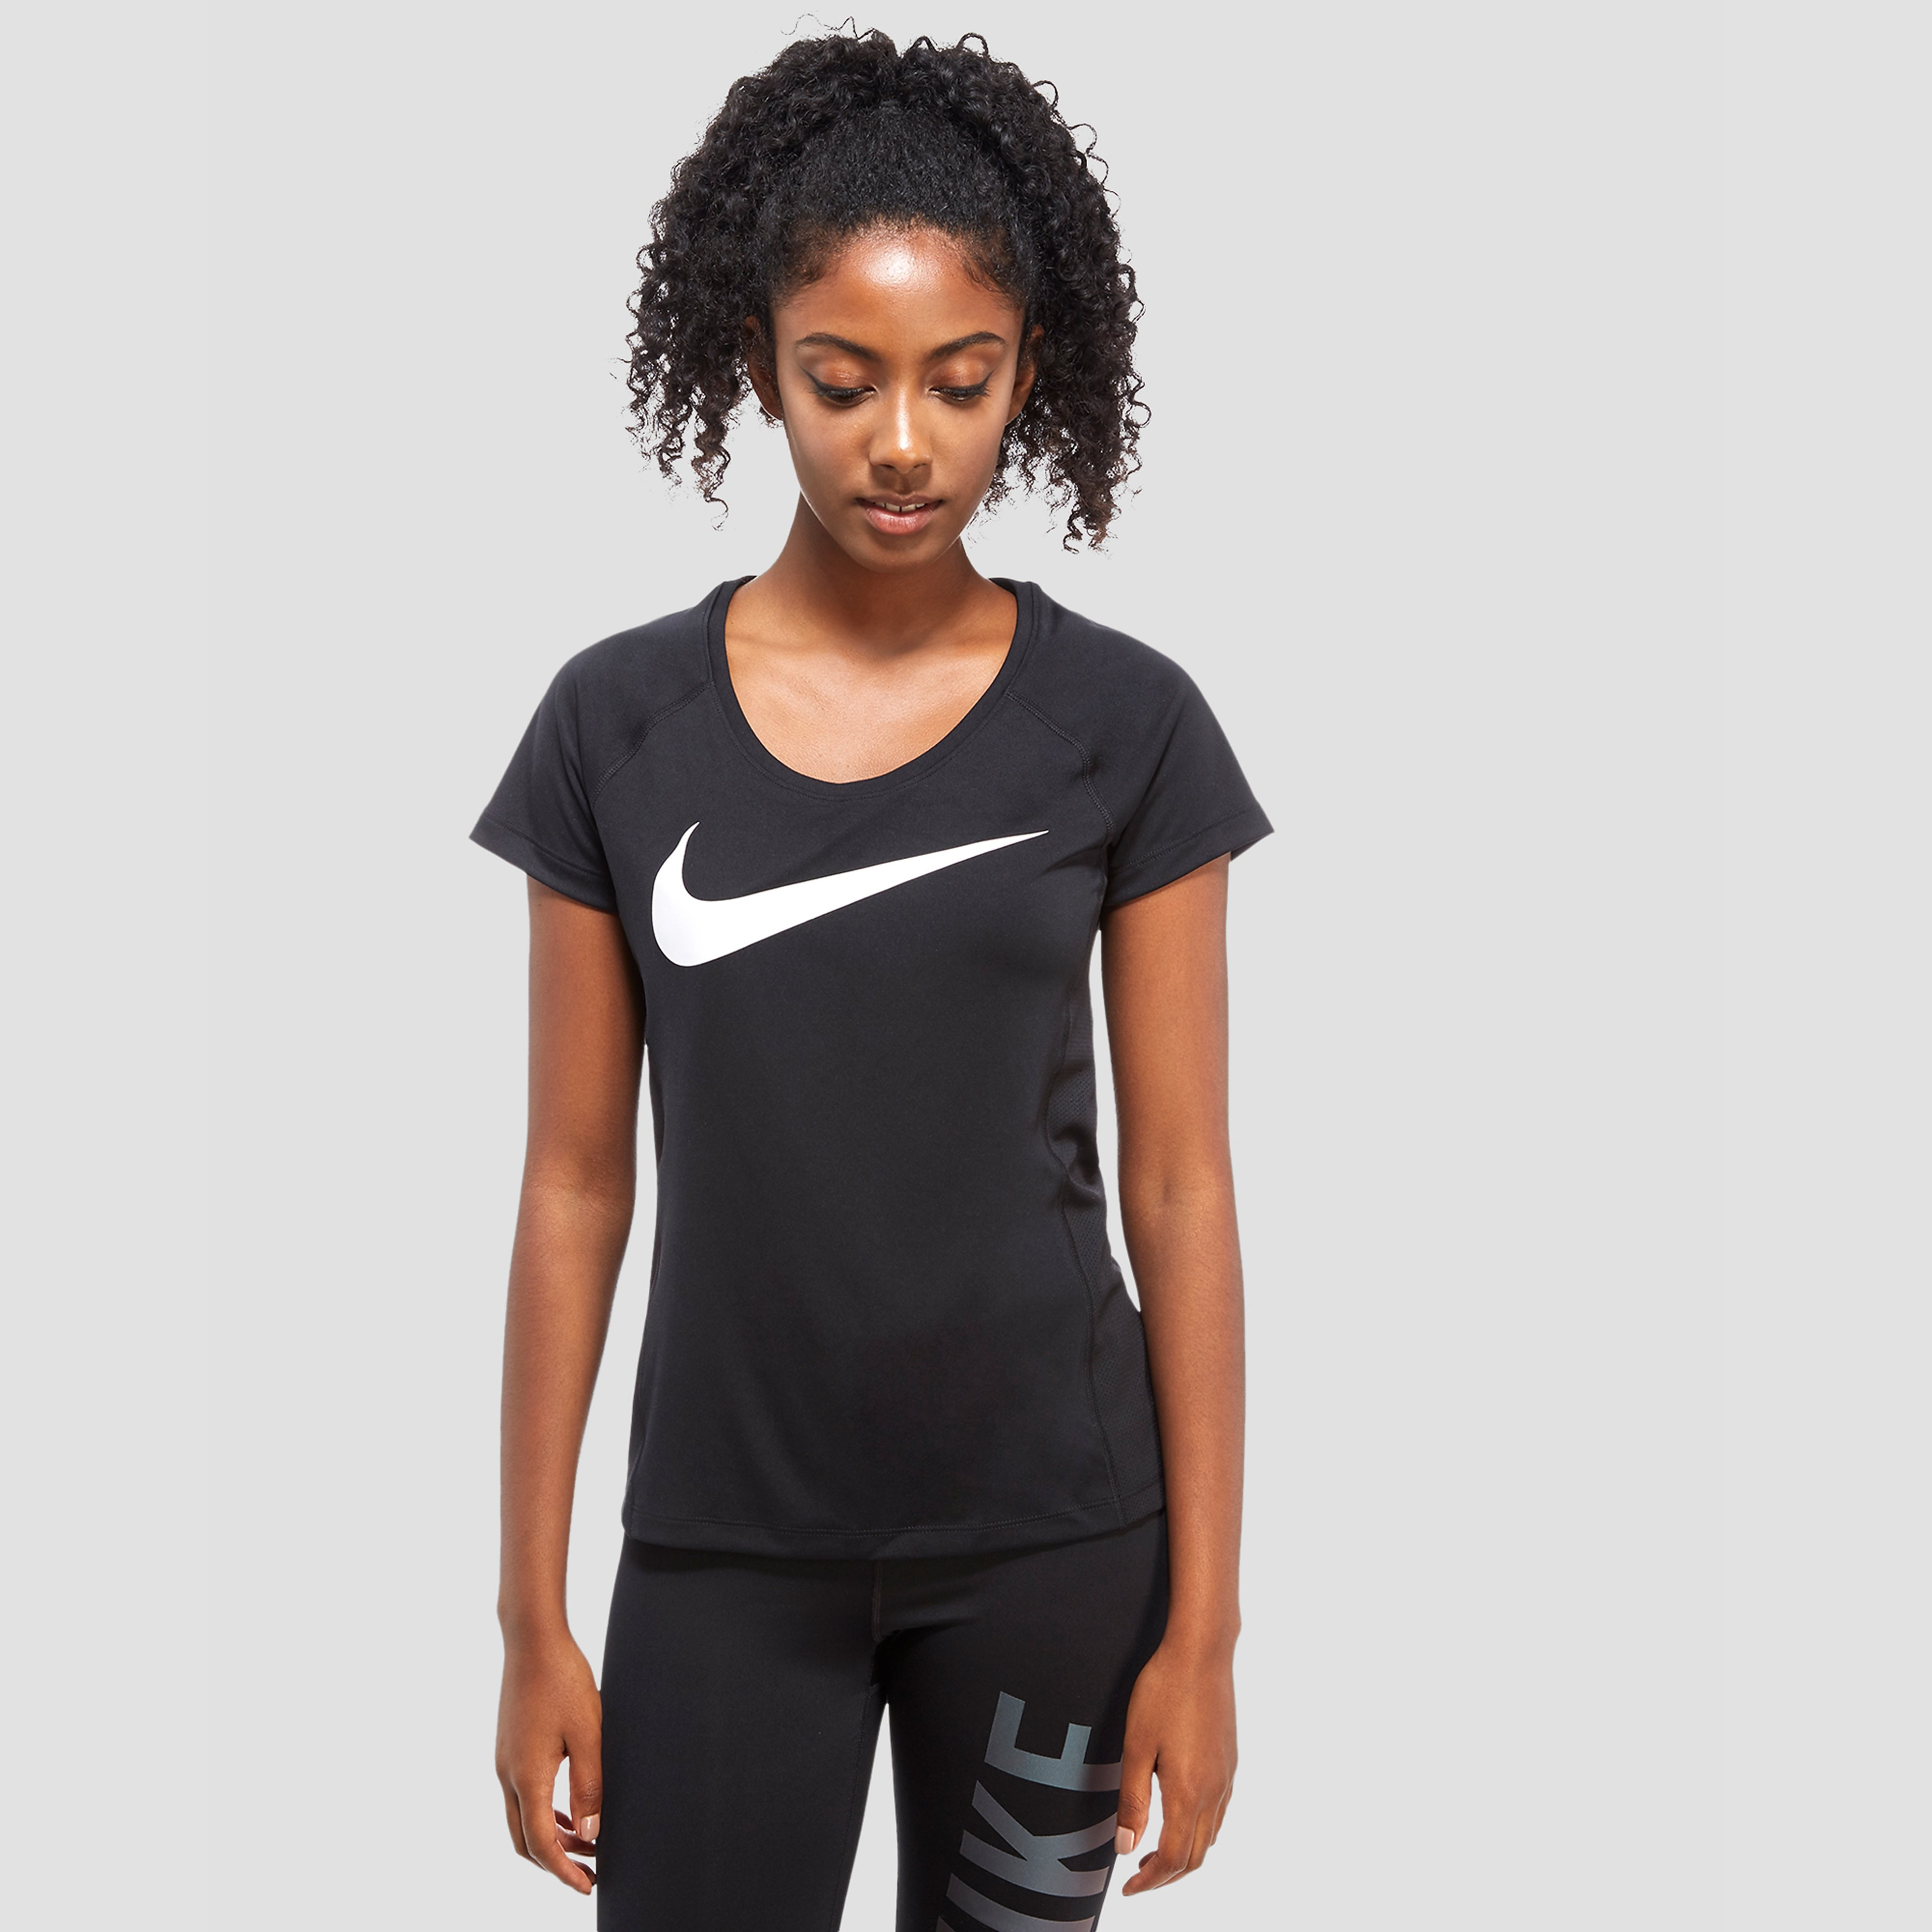 Nike Dry Miler Women's Running Top